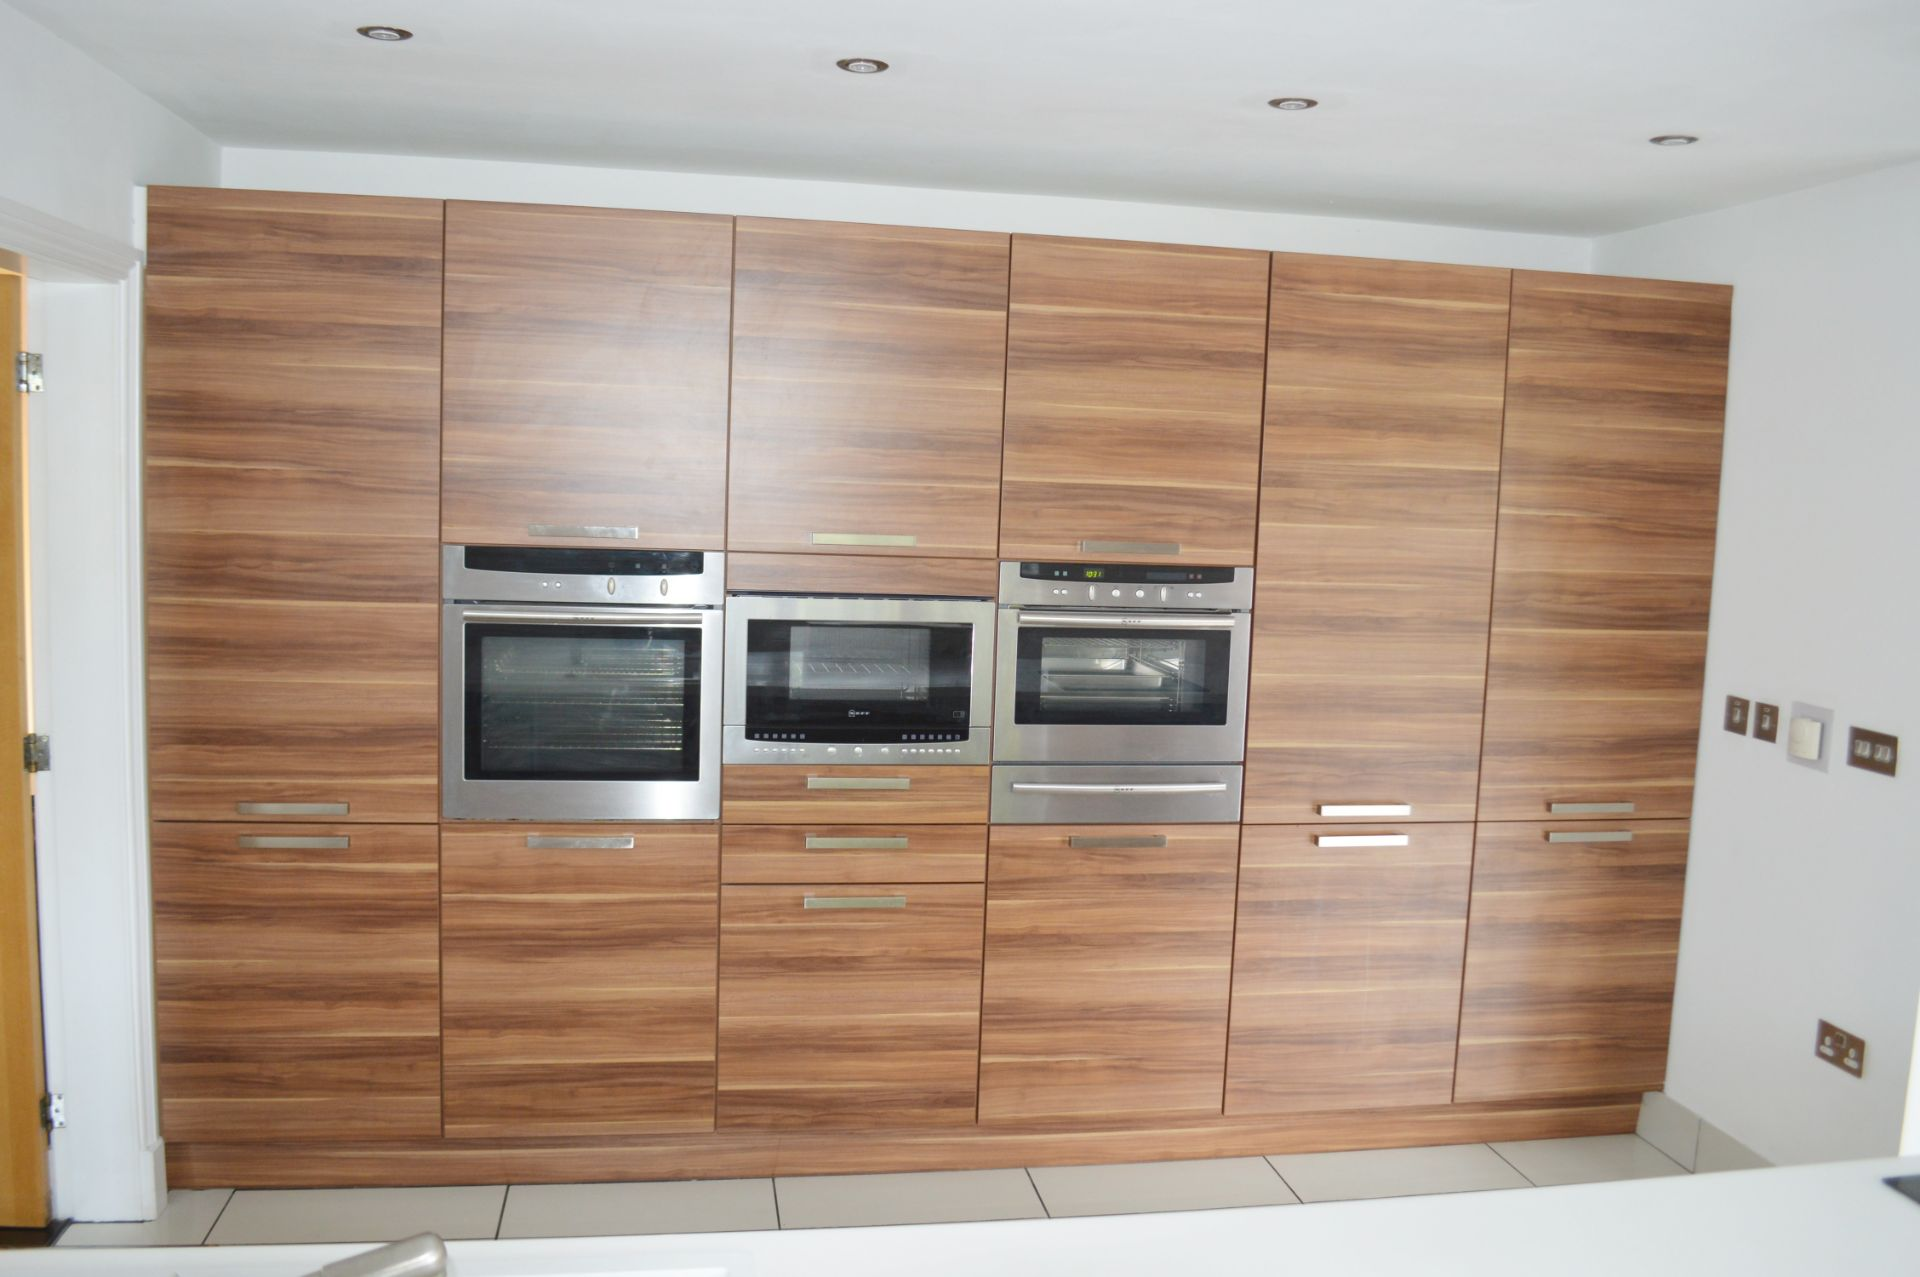 1 x Contemporary Bespoke Fitted Kitchen With Integrated Neff Branded Appliances, Quartz Worktops - Image 19 of 52